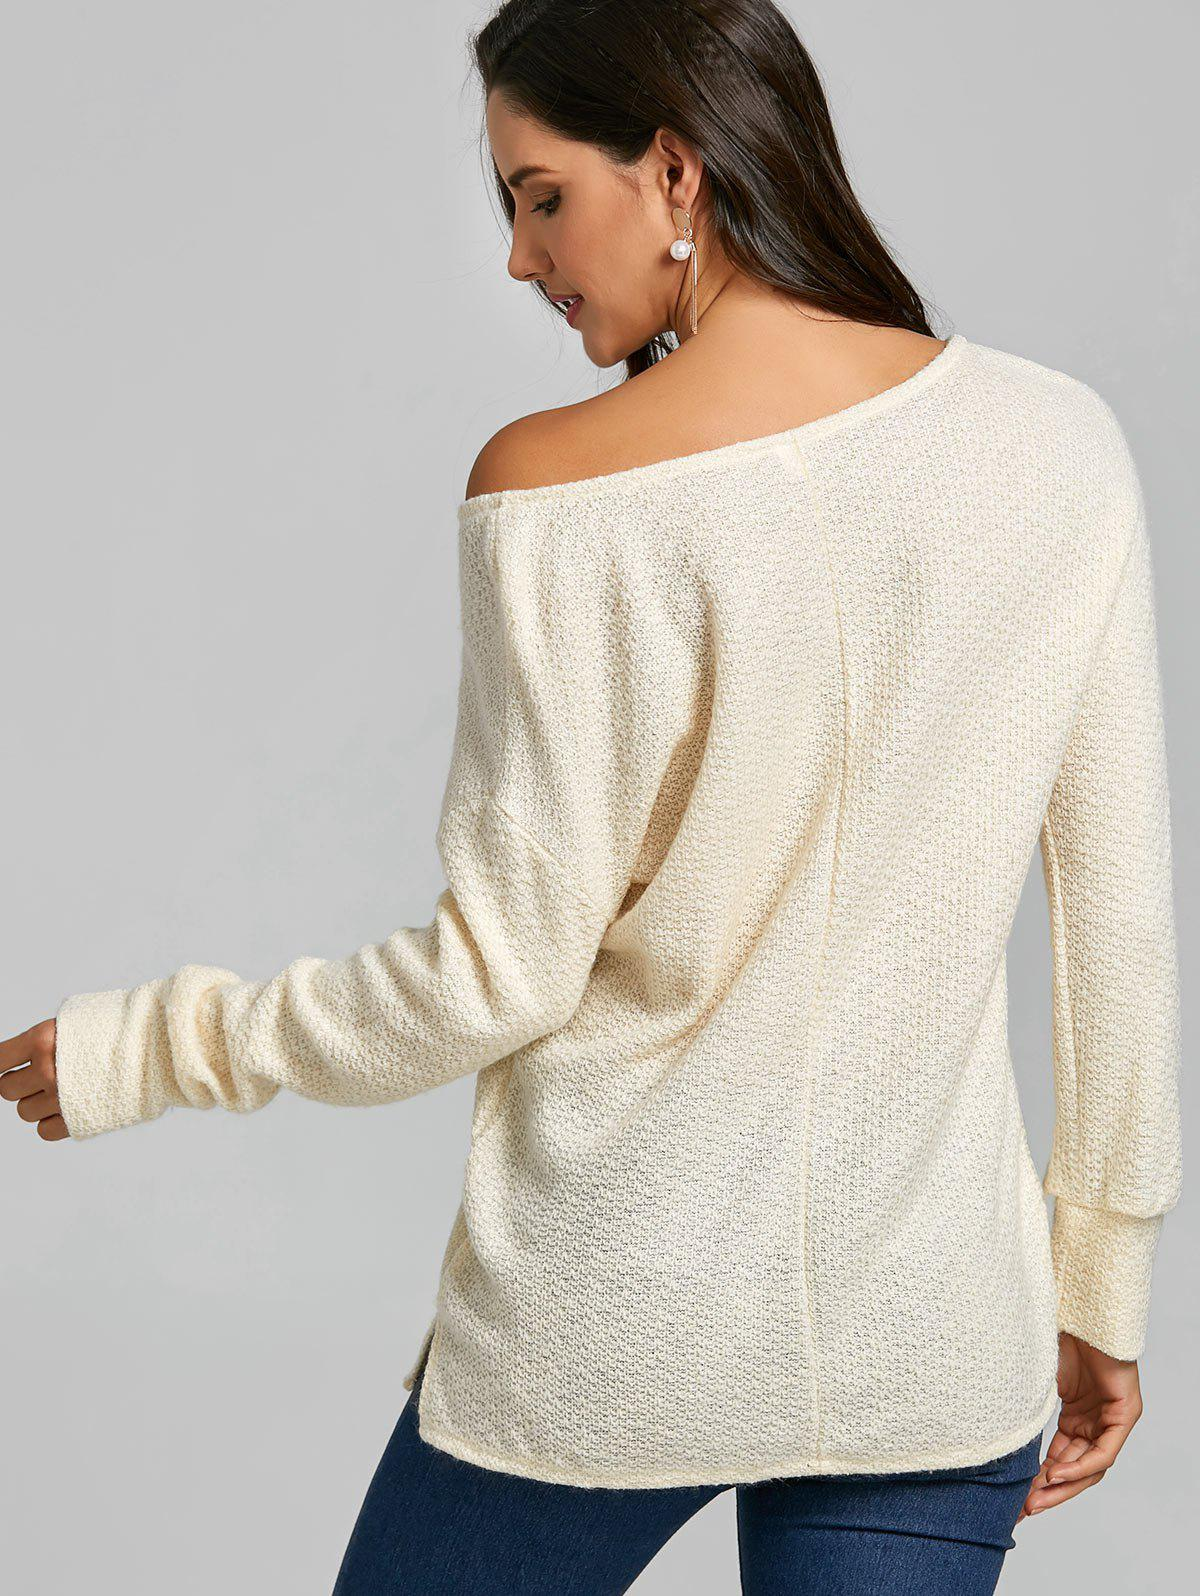 Skew Neck Tunic Knitwear - OFF WHITE L